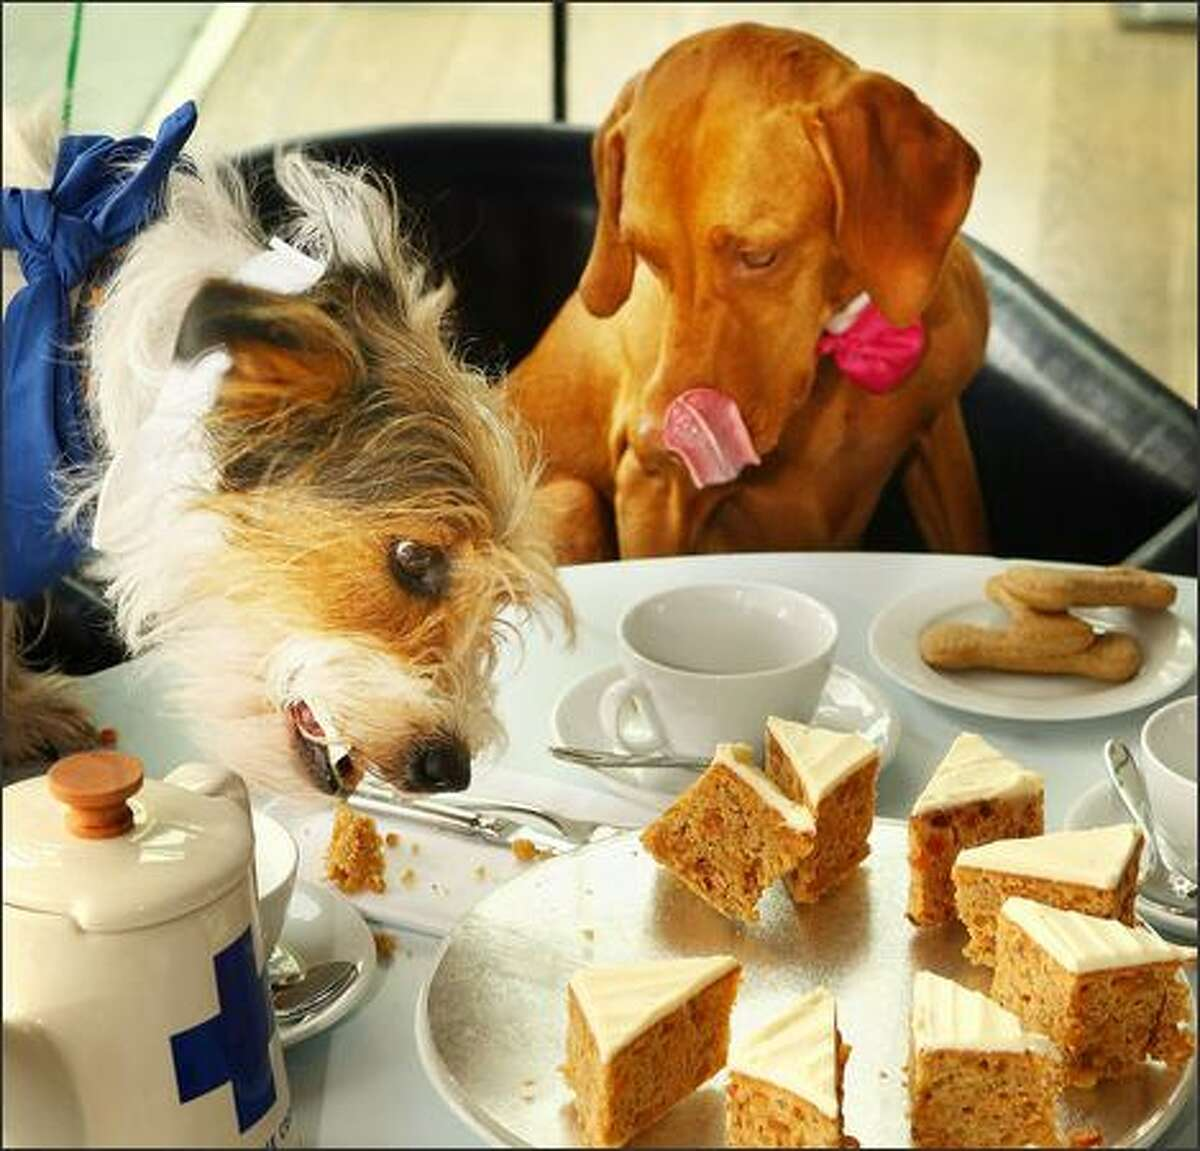 Romi (right) watches Freddy eat some cake during a tea party in the Oxo Tower restaurant in London.